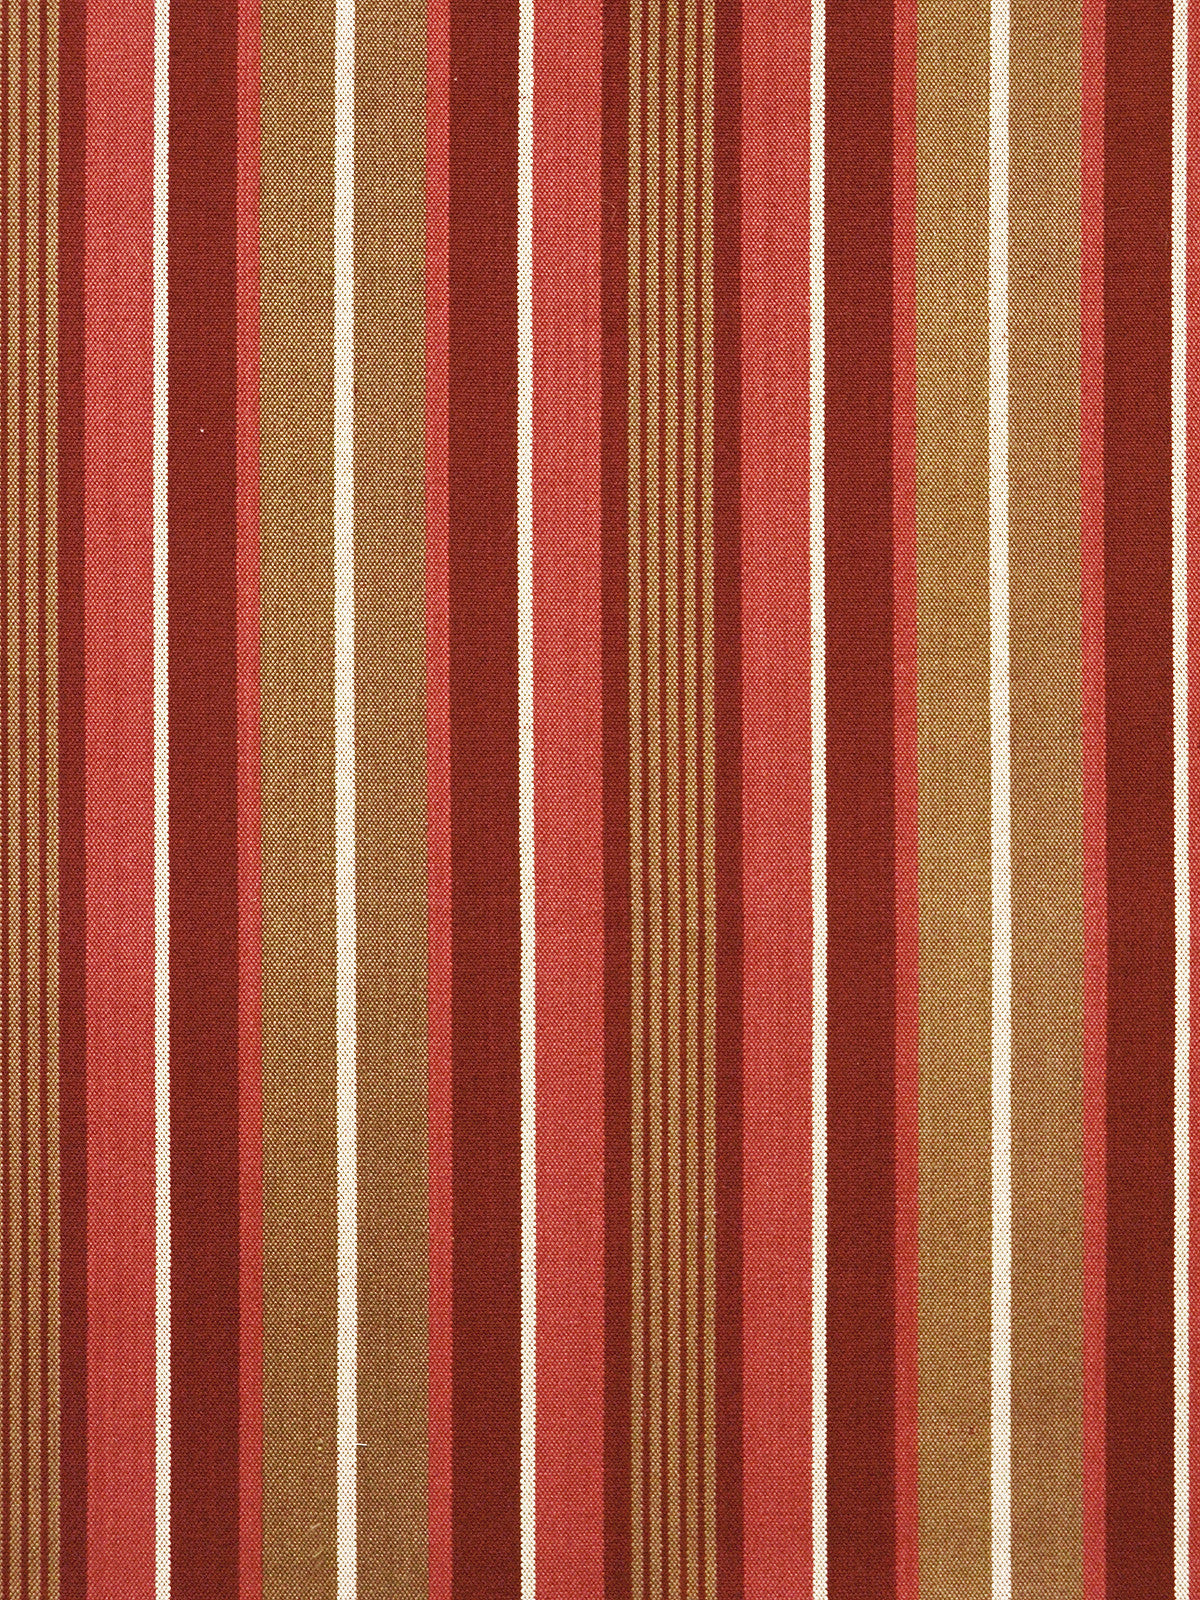 red striped upholstery fabrics, online fabric stores, red stripes